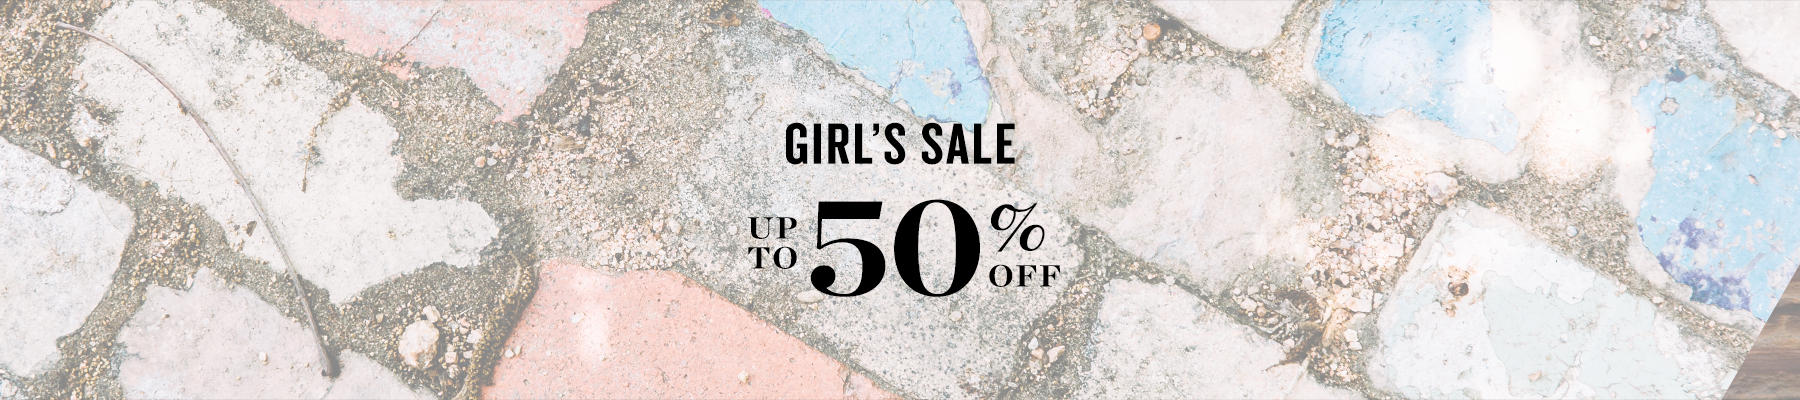 Girl's Sale up to 50% off